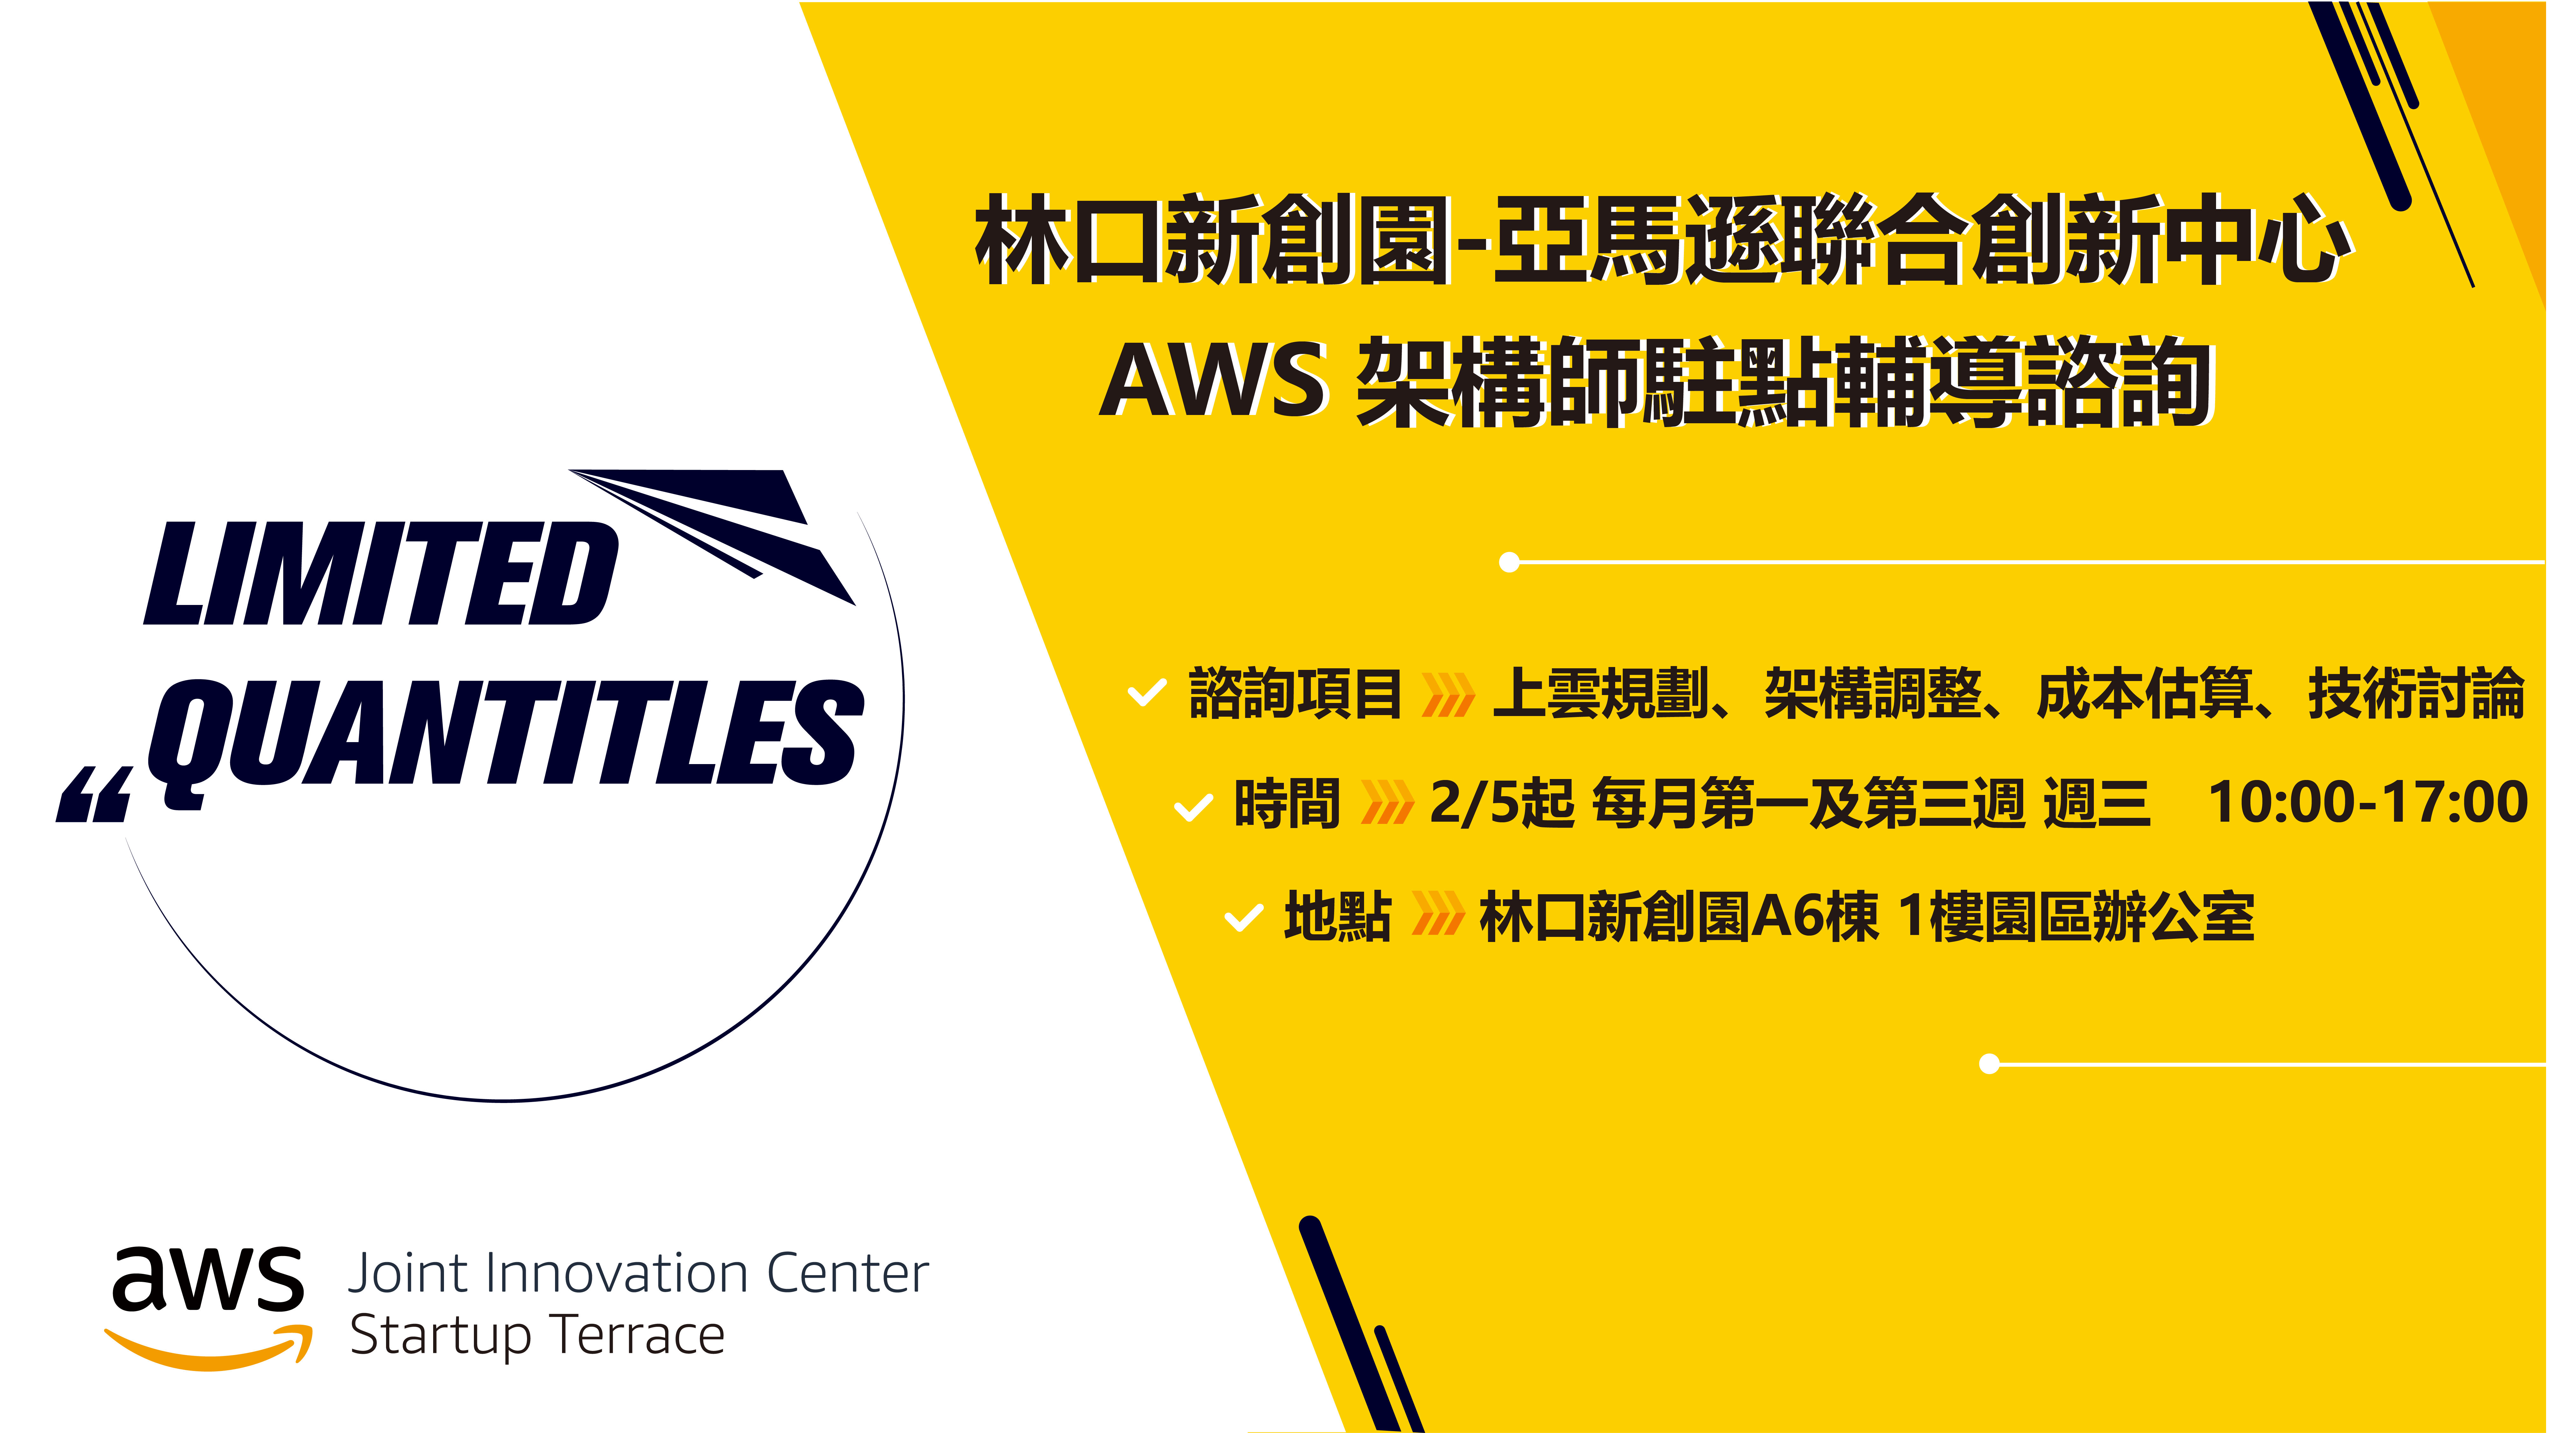 AWS Architect Consulting Services 【only for partners of Startup Terrace】